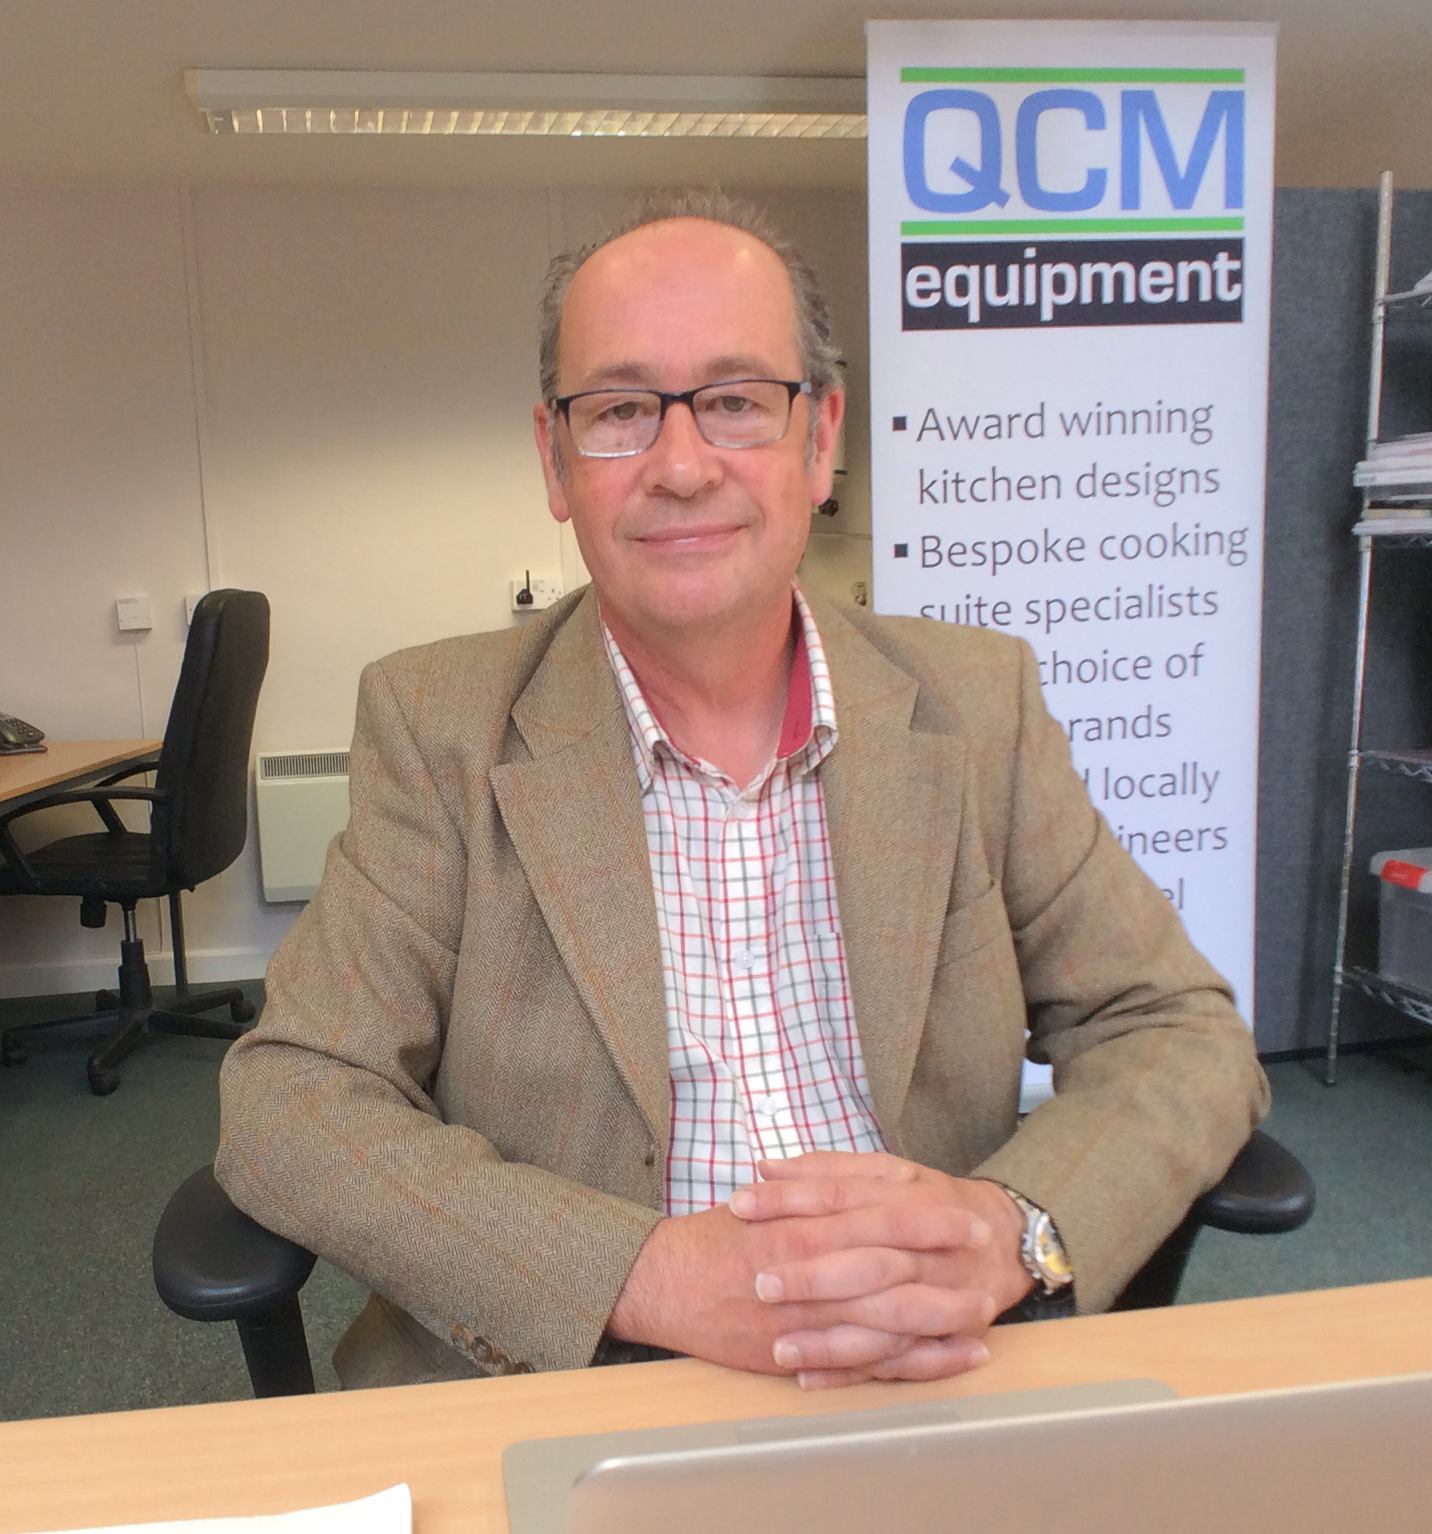 QCM's Gerry Oakley praised the distributor's relationship with Hobart.